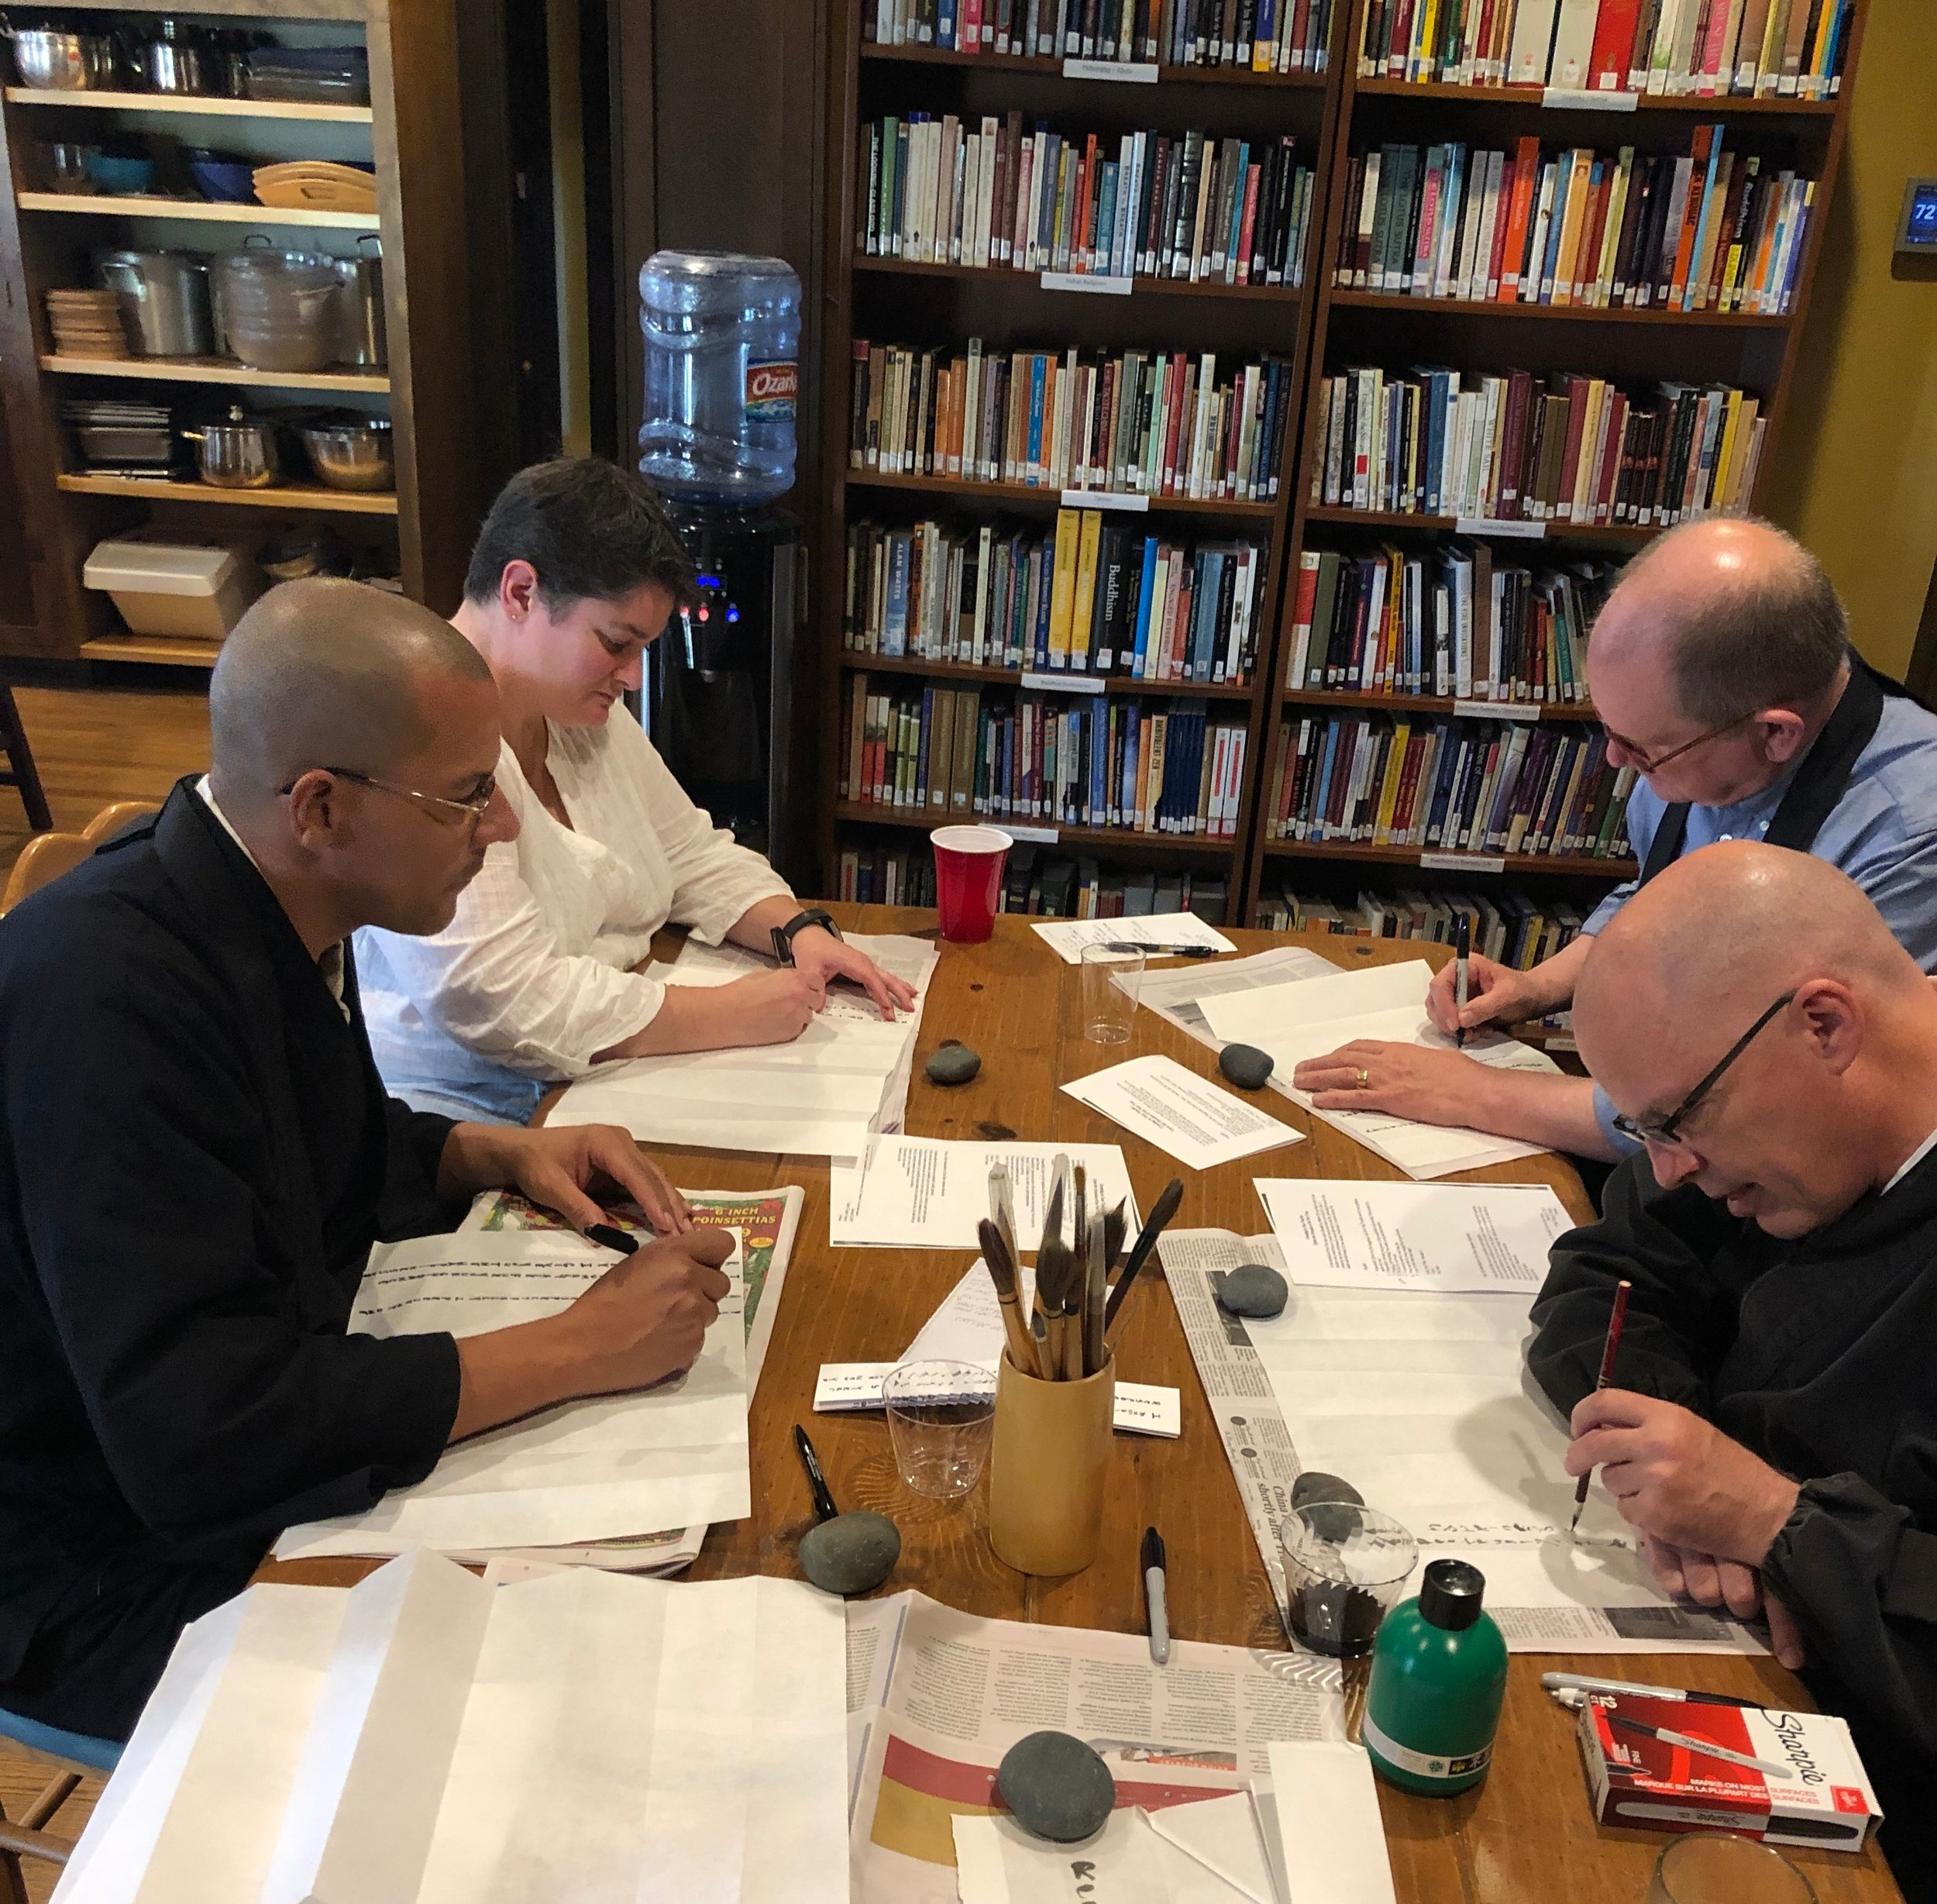 Royce, Vicki, Tim, and Glen working on documents for New Year's greetings.